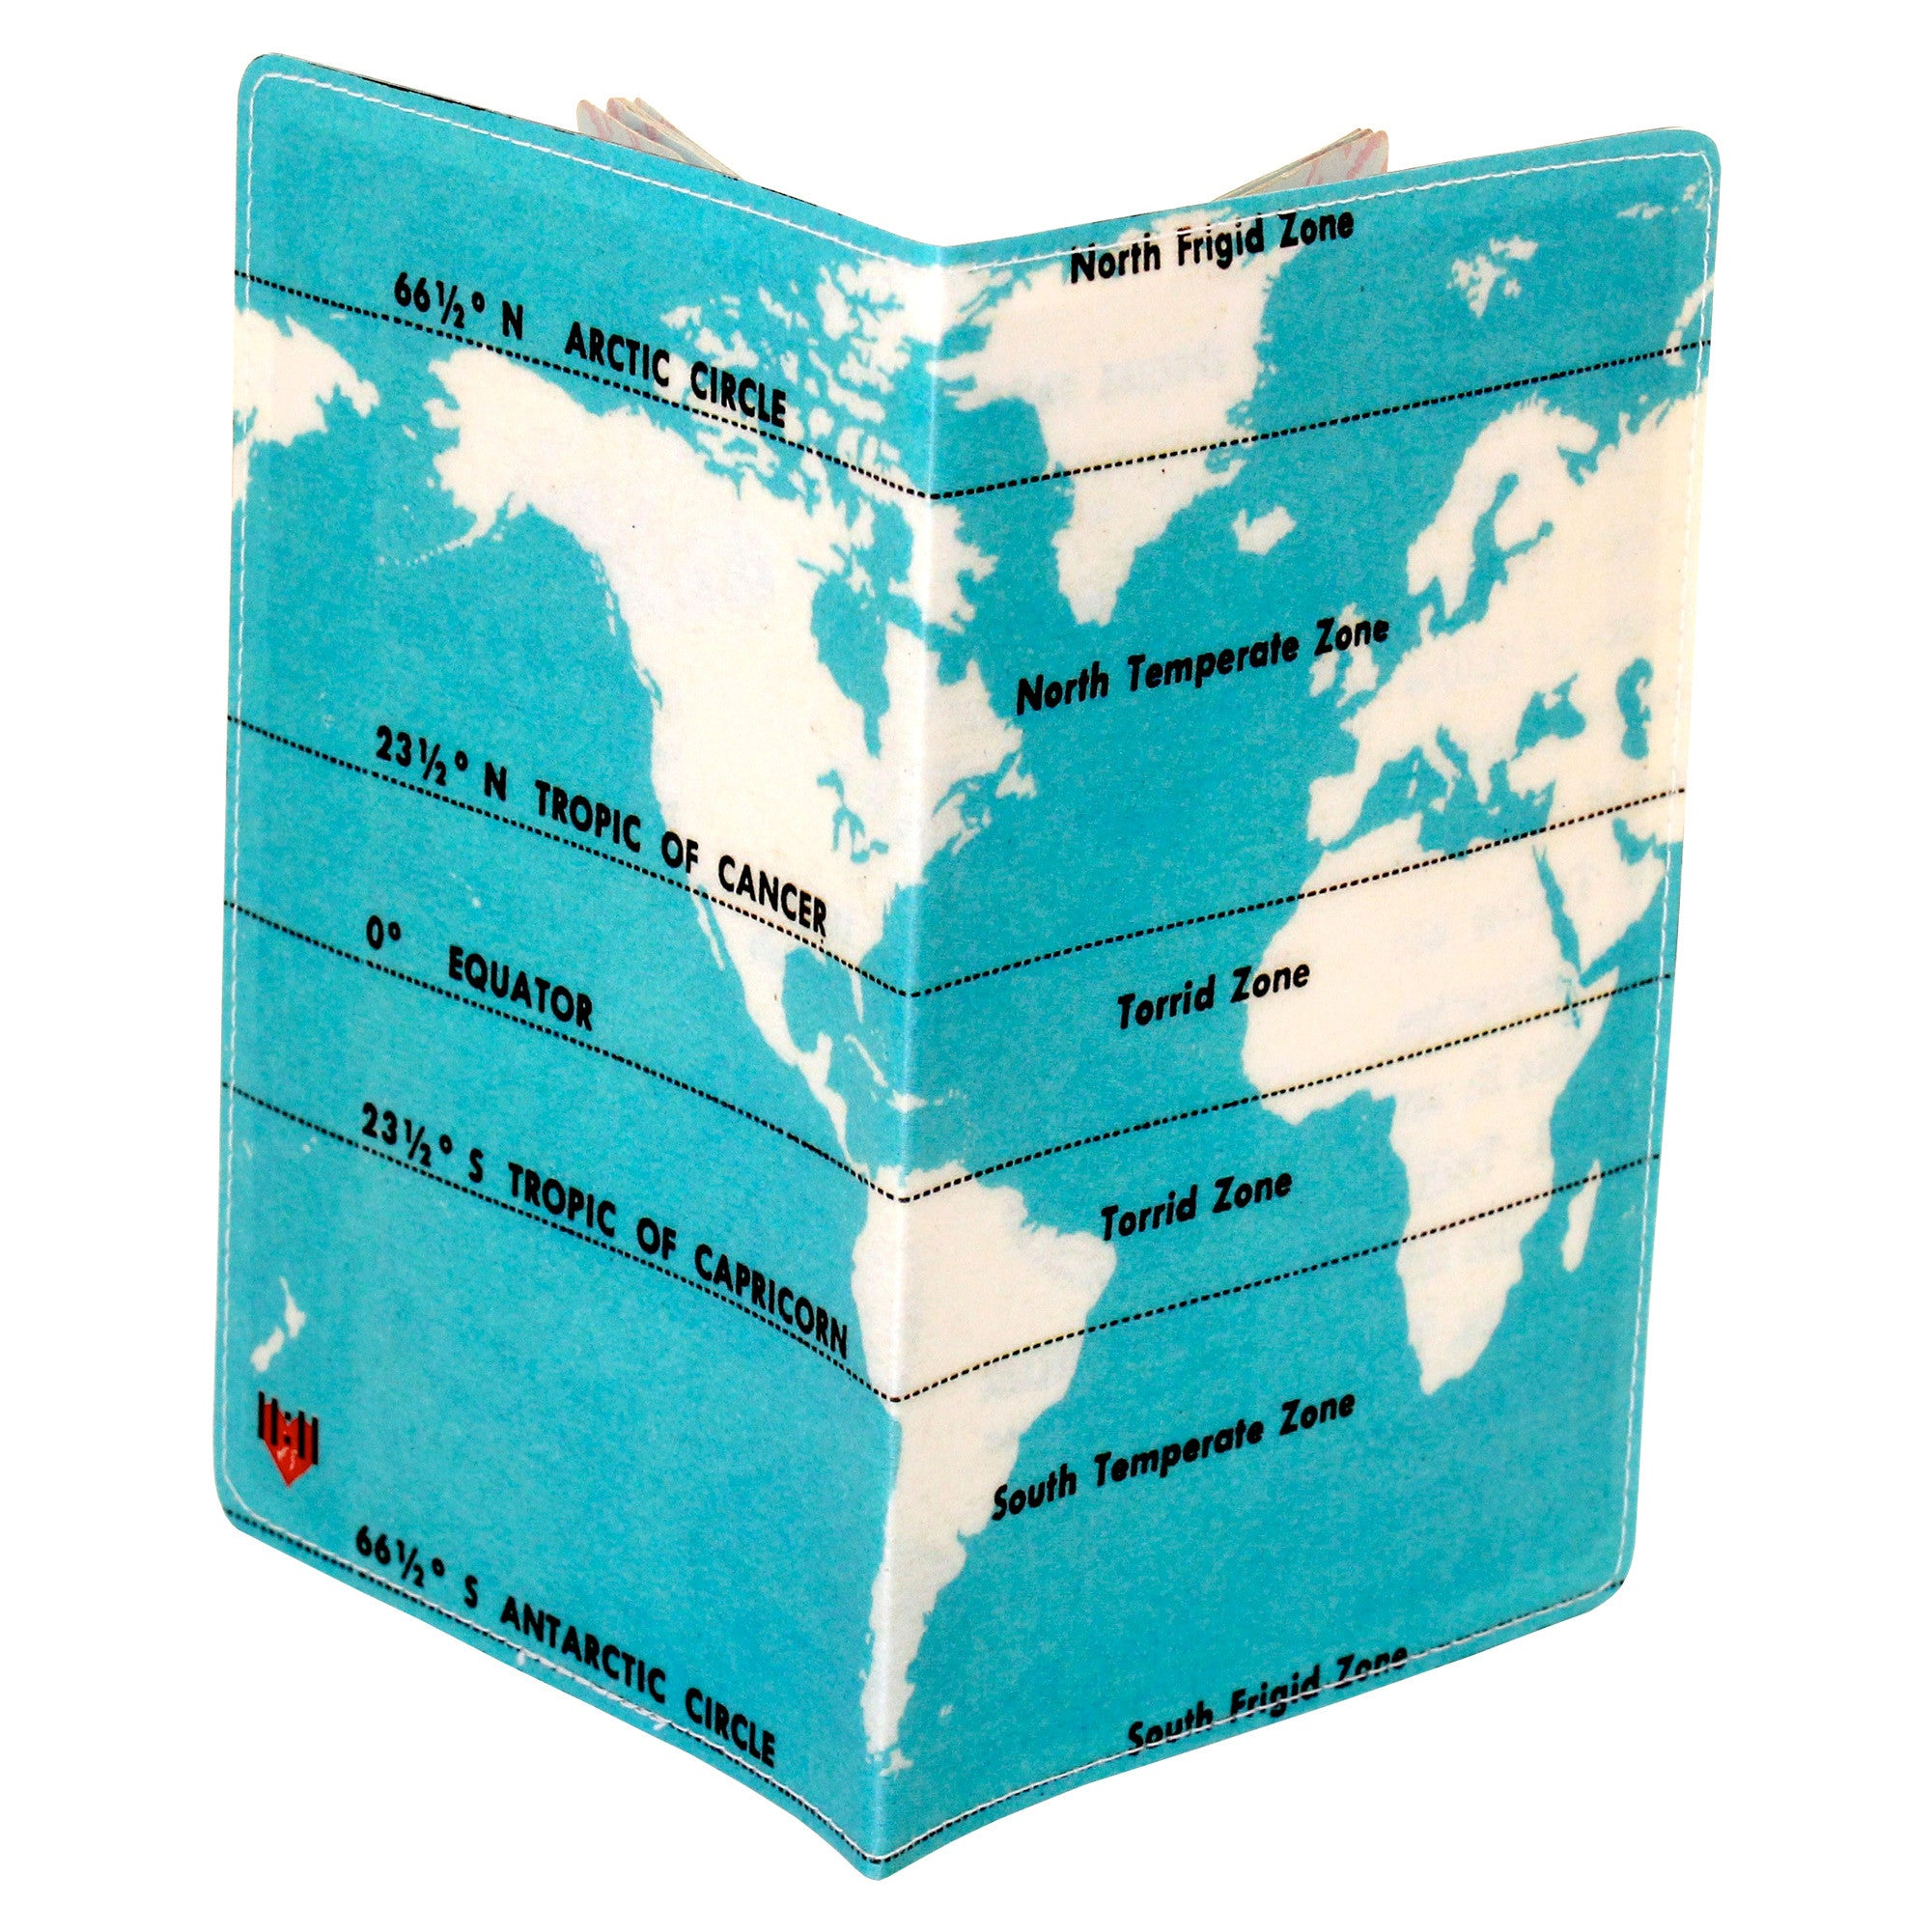 Climate Zones Map Passport Holder